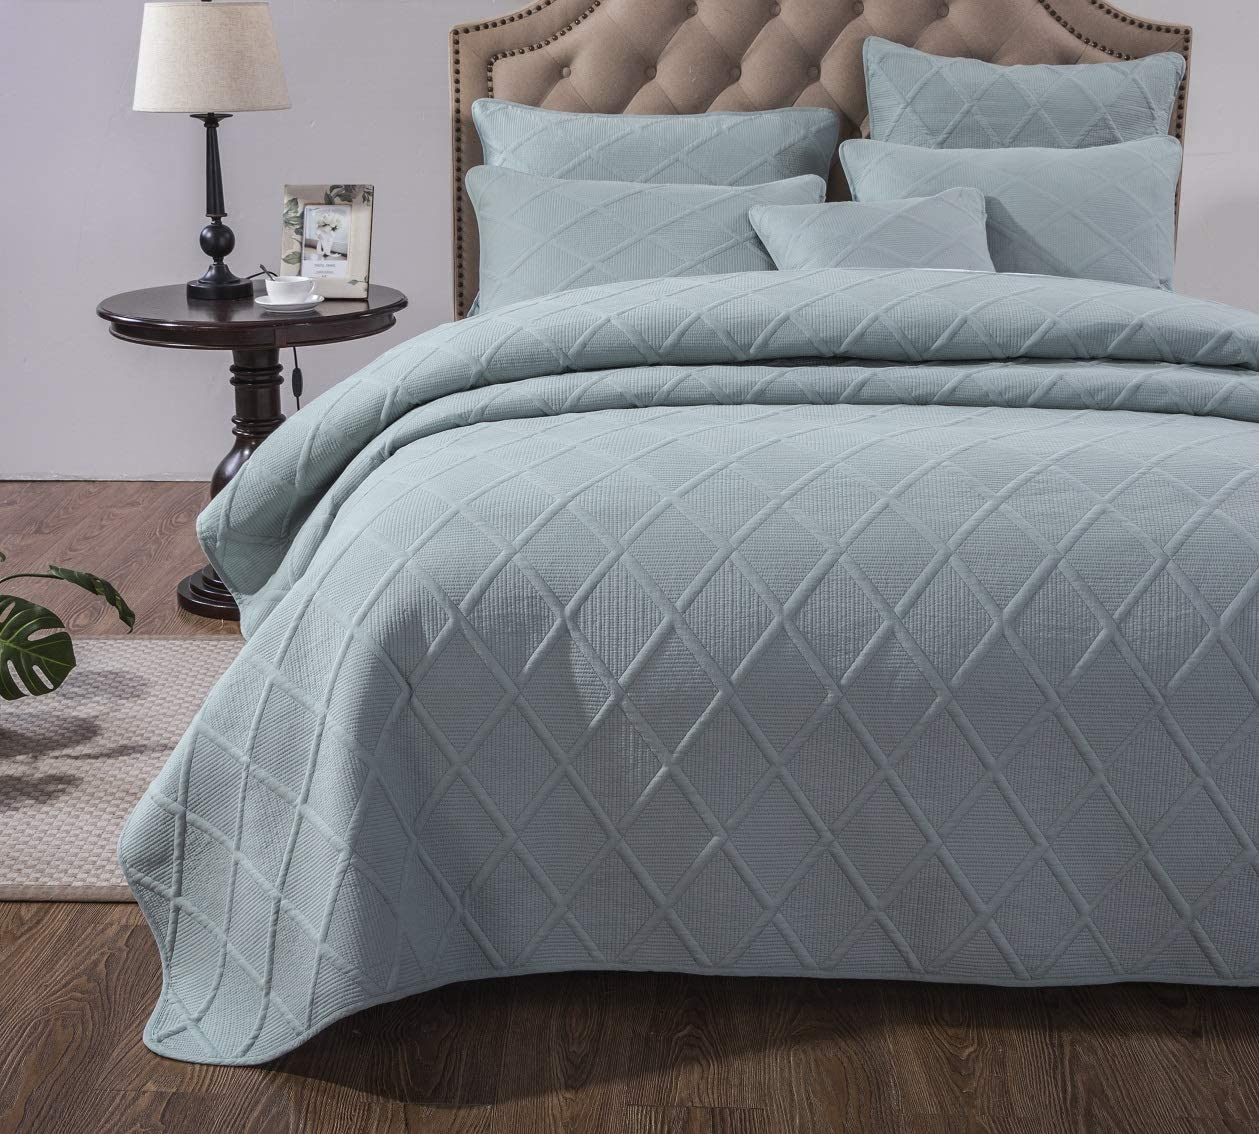 Tache Solid Seafoam Blue Green Soothing Pastel Soft Cotton Geometric Diamond Stitch Pattern Lightweight Quilted Bedspread 3 Piece Set, Full